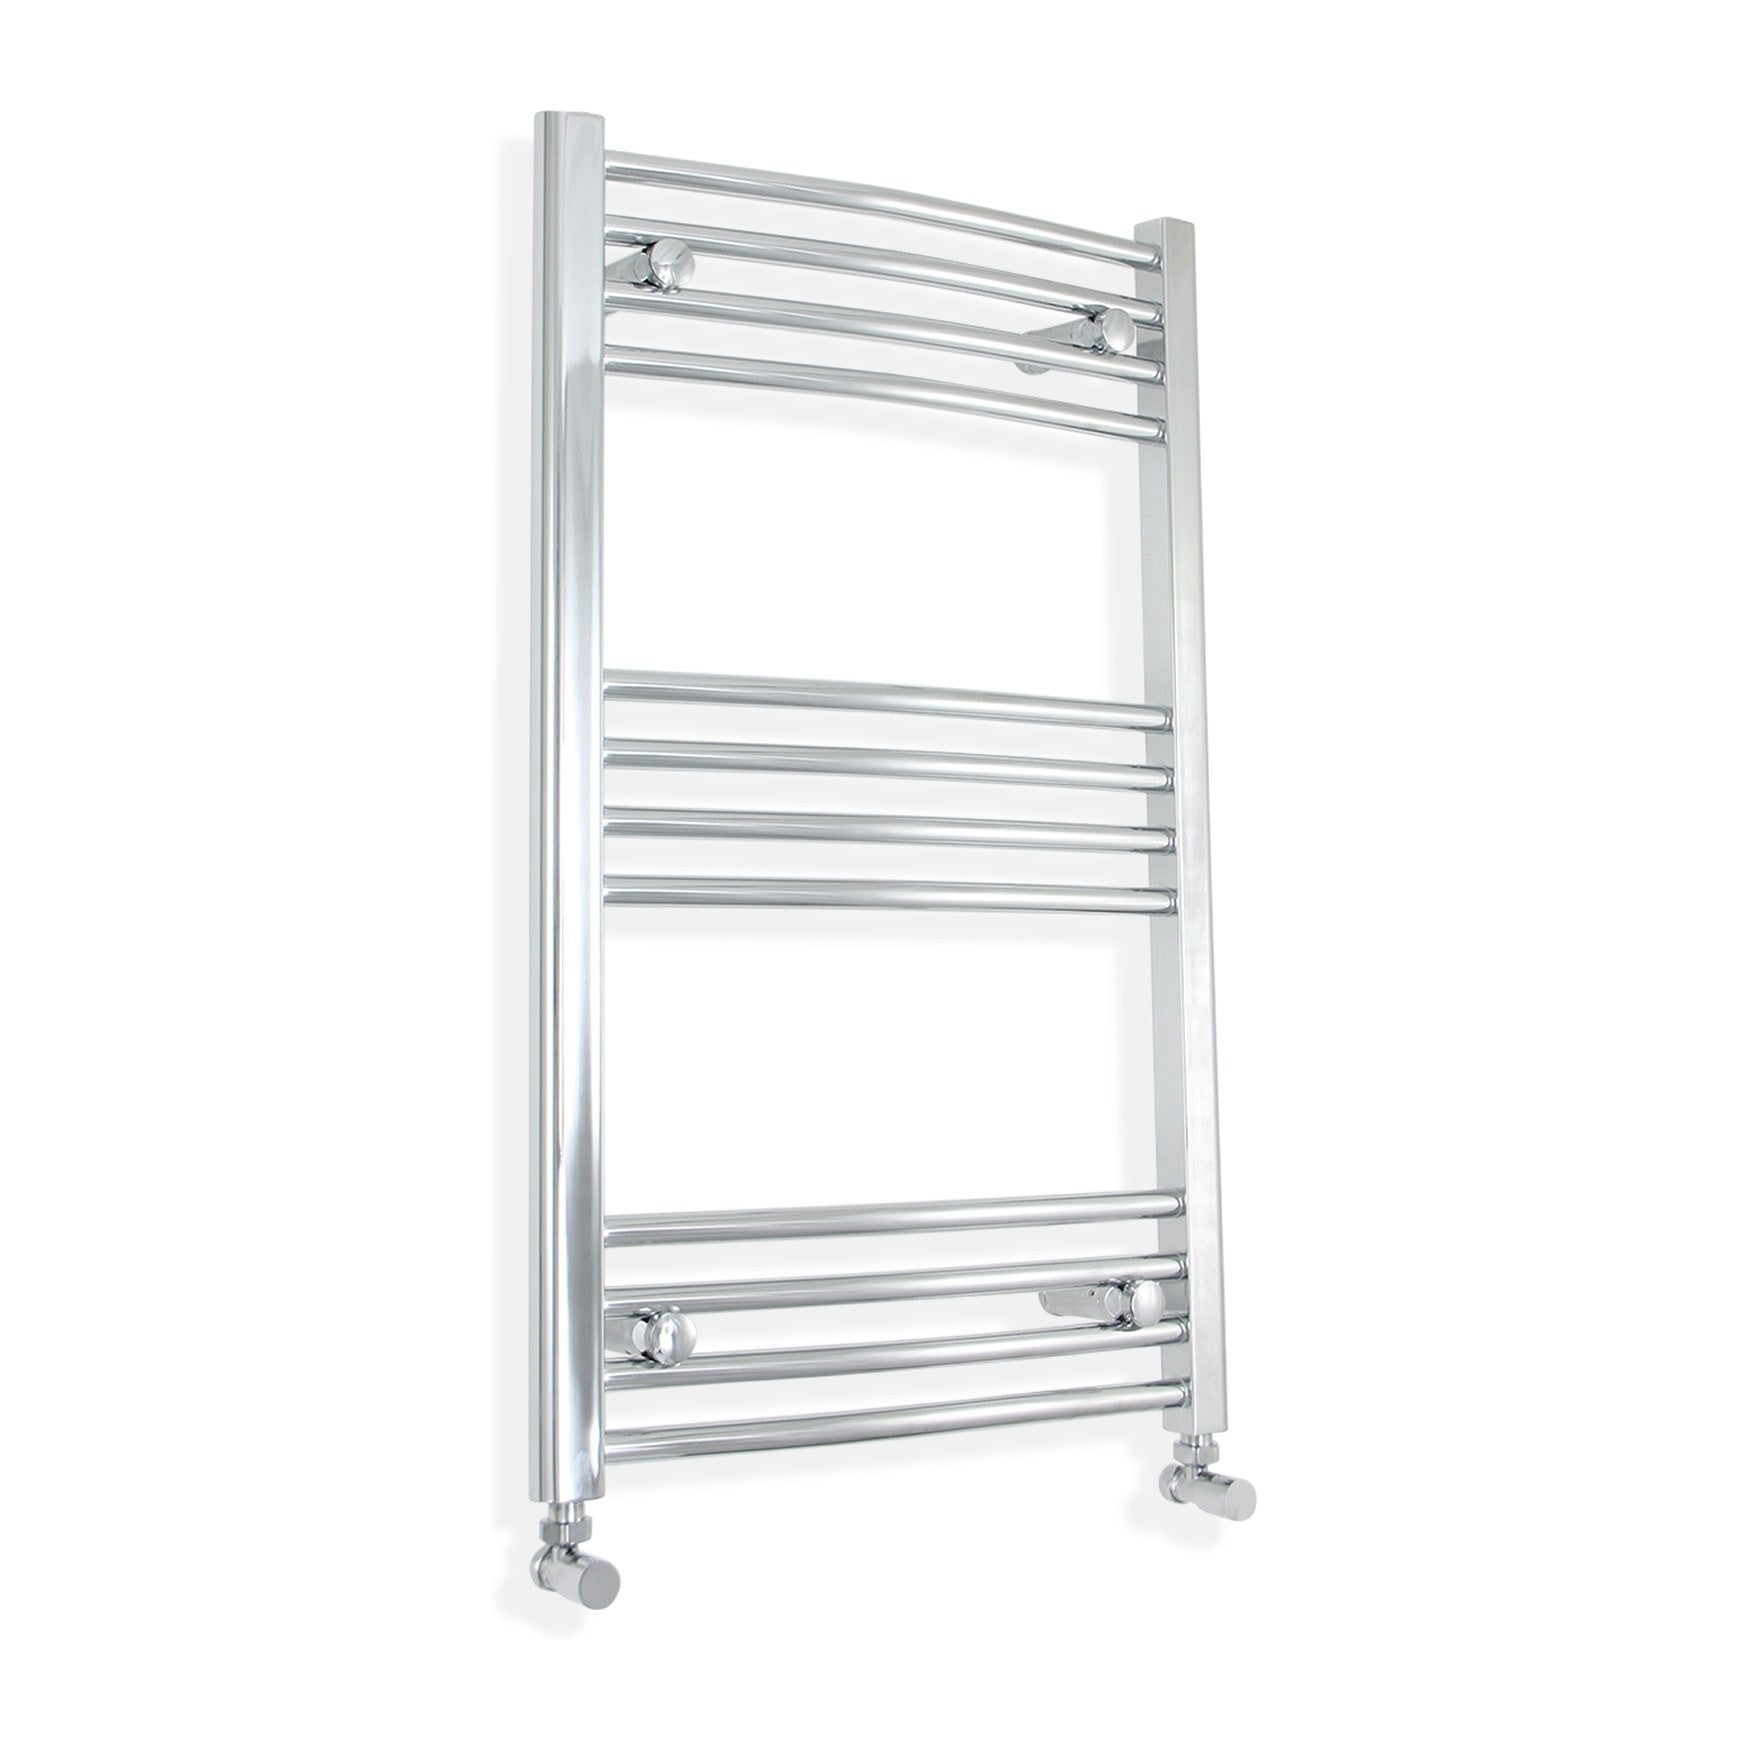 600mm Wide 800mm High Curved Chrome Towel Rail Radiator With Angled Valve